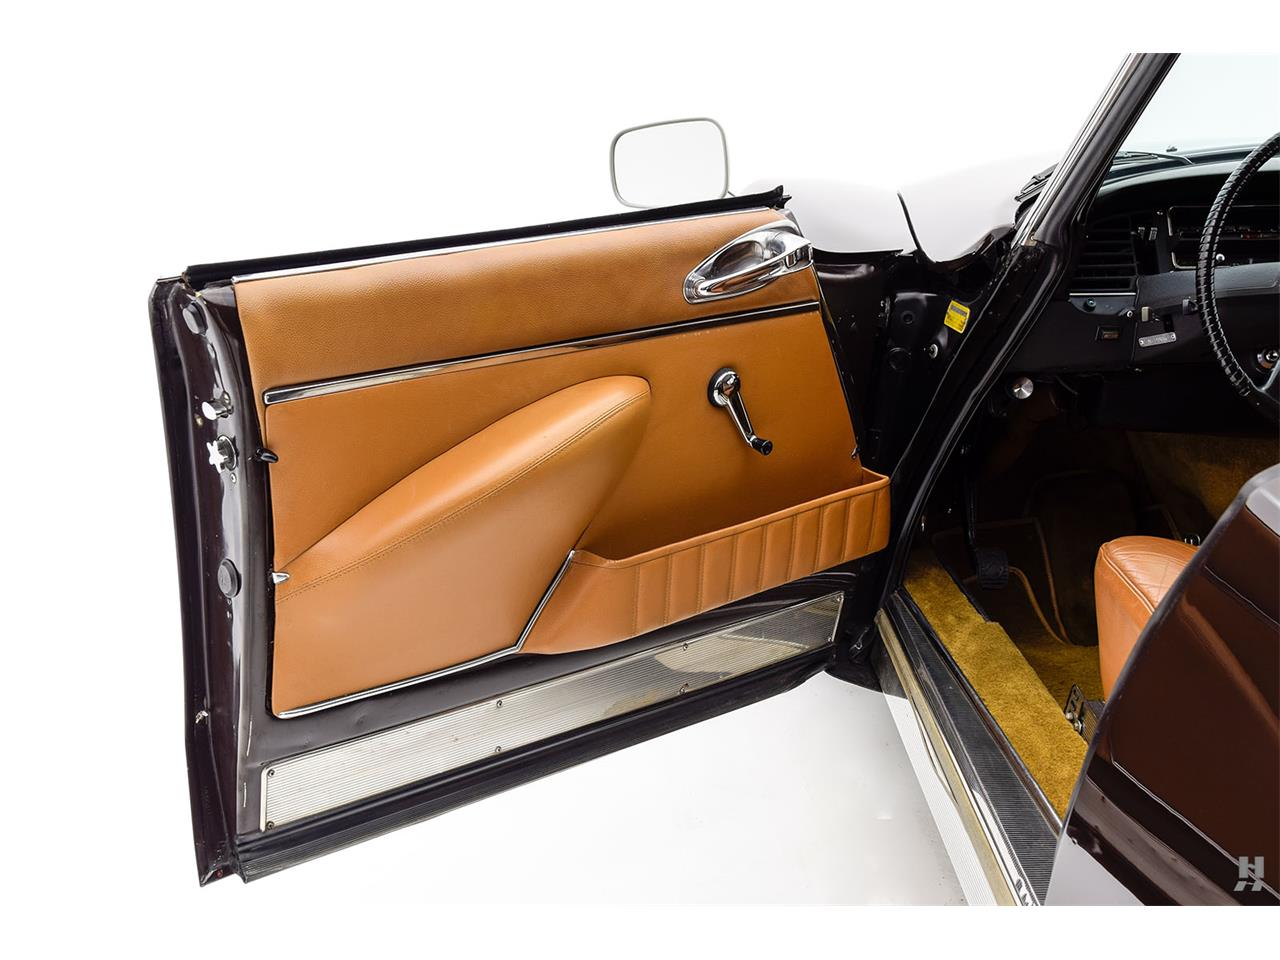 Large Picture of 1969 Citroen DS21 Pallas located in Missouri Offered by Hyman Ltd. Classic Cars - OVD1